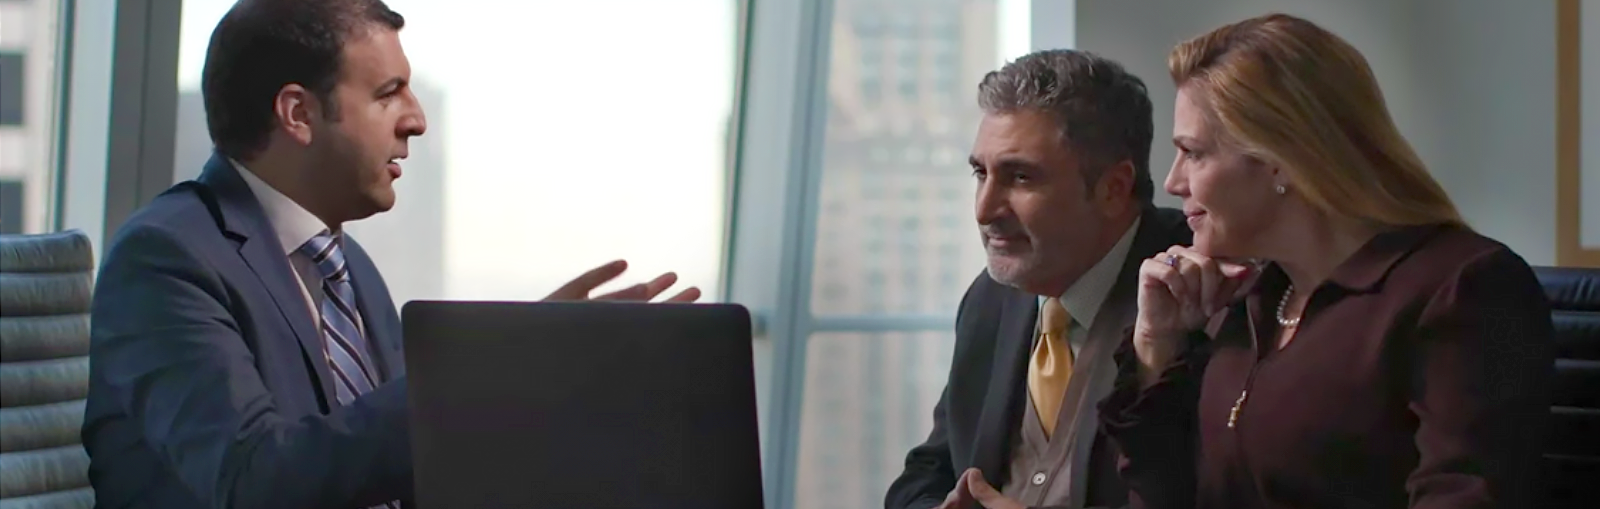 Learn What It S Like To Work With A Merrill Lynch Financial Advisor